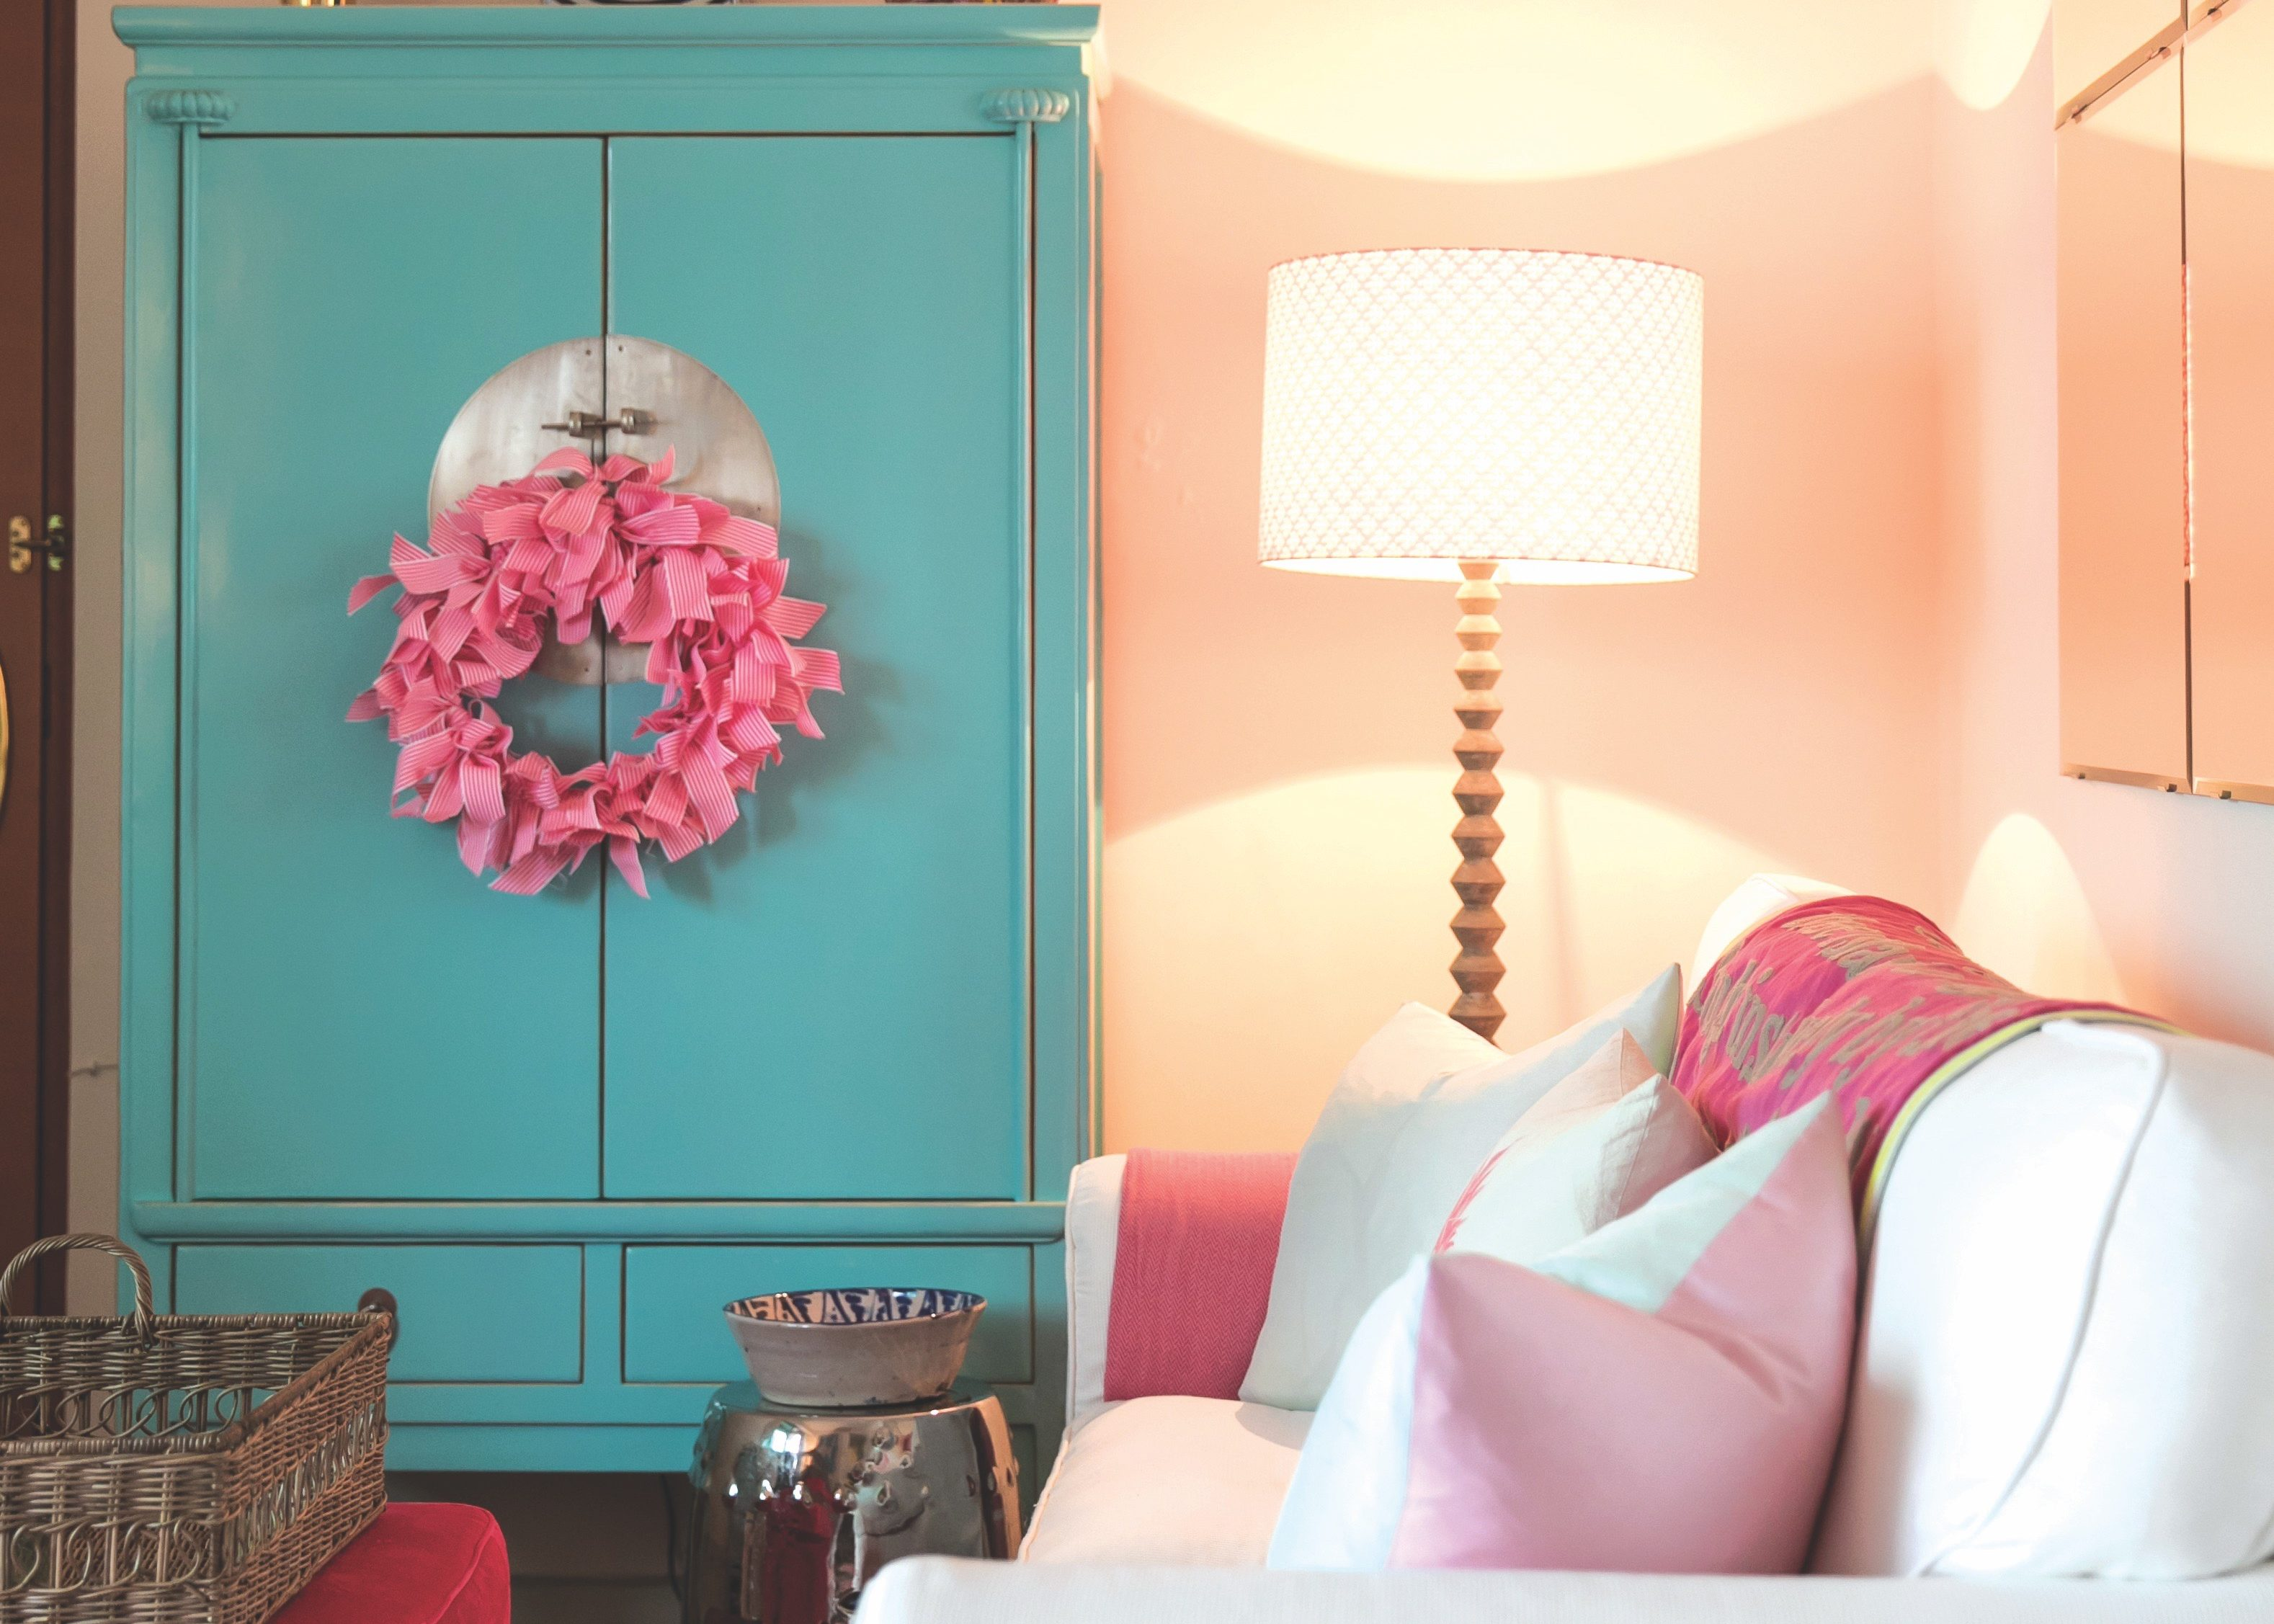 Interior design: pink and blue hues are used throughout the home